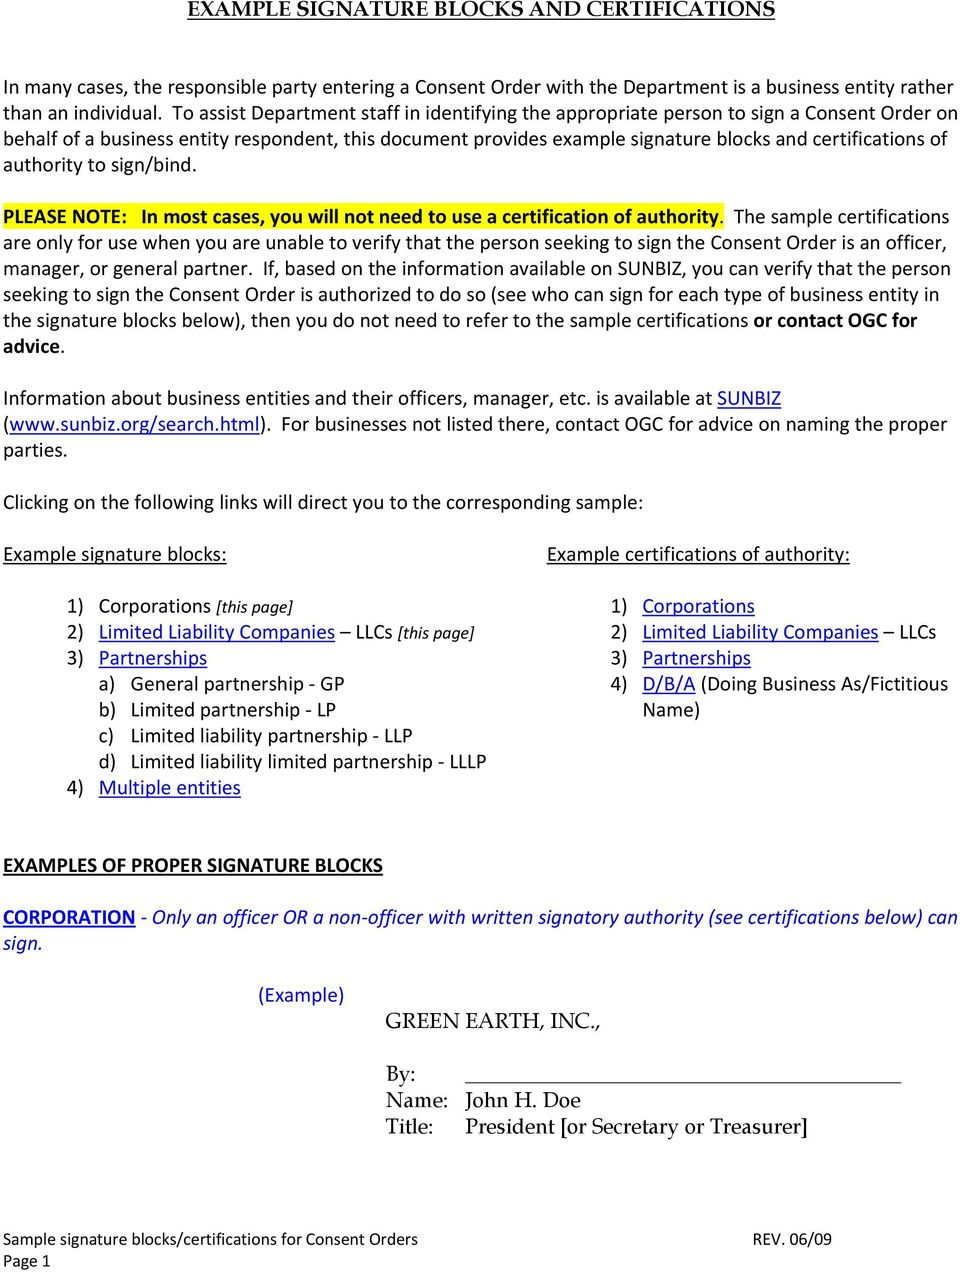 Example signature blocks and certifications pdf for Corporate resolution authorized signers template